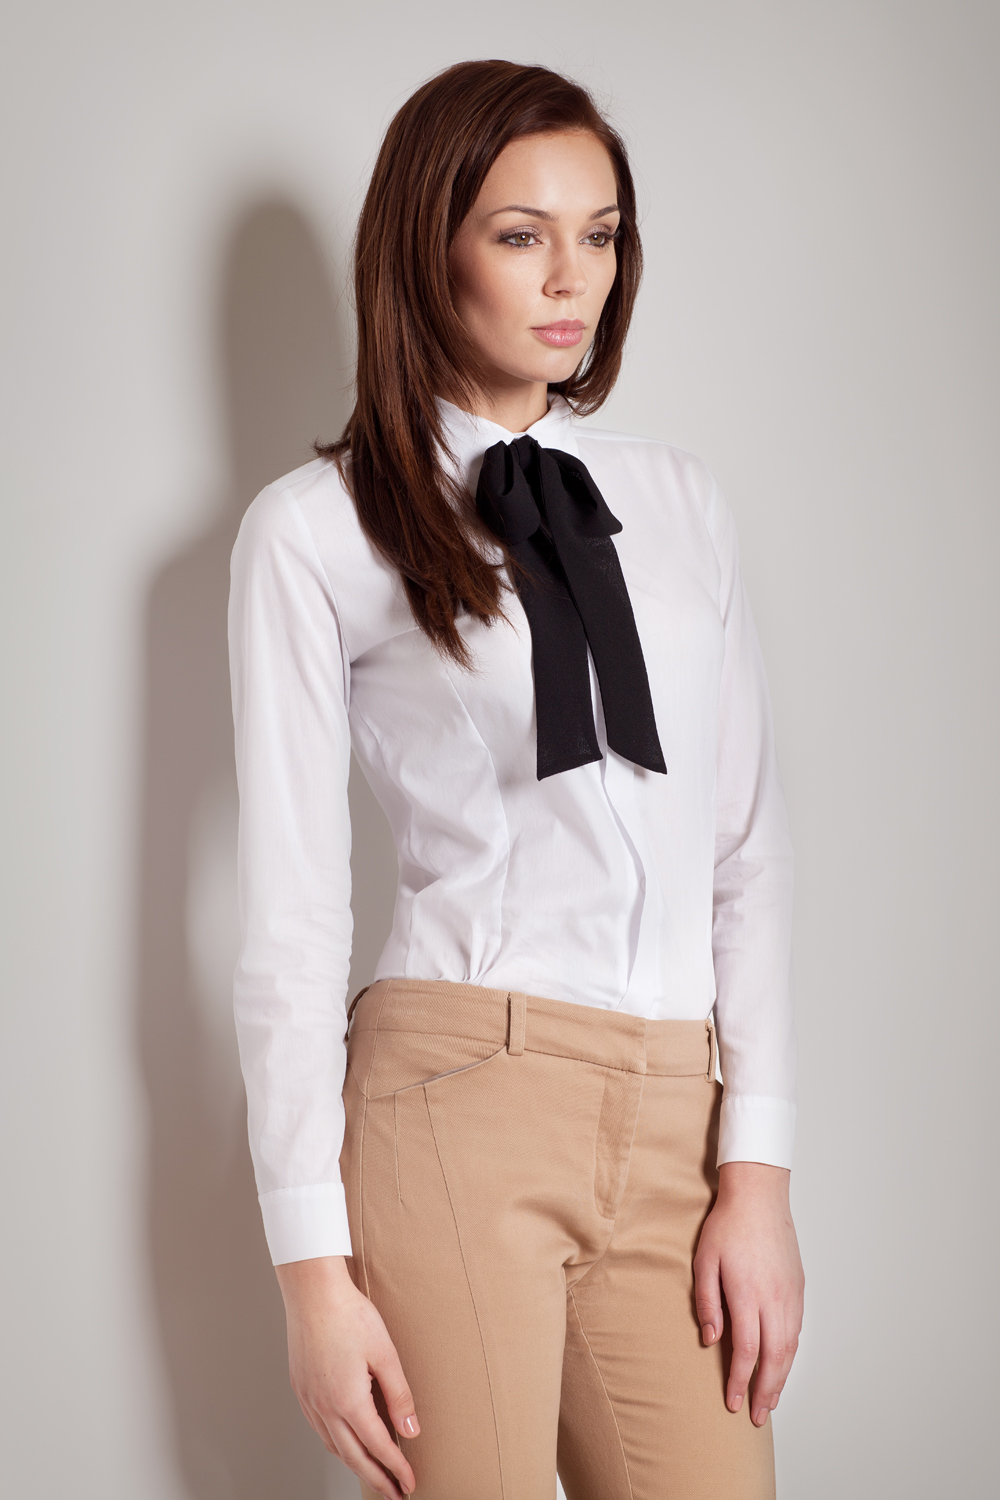 Contrast Pussy Black Bow Seam White Blouse With Cuffed Long Sleeves